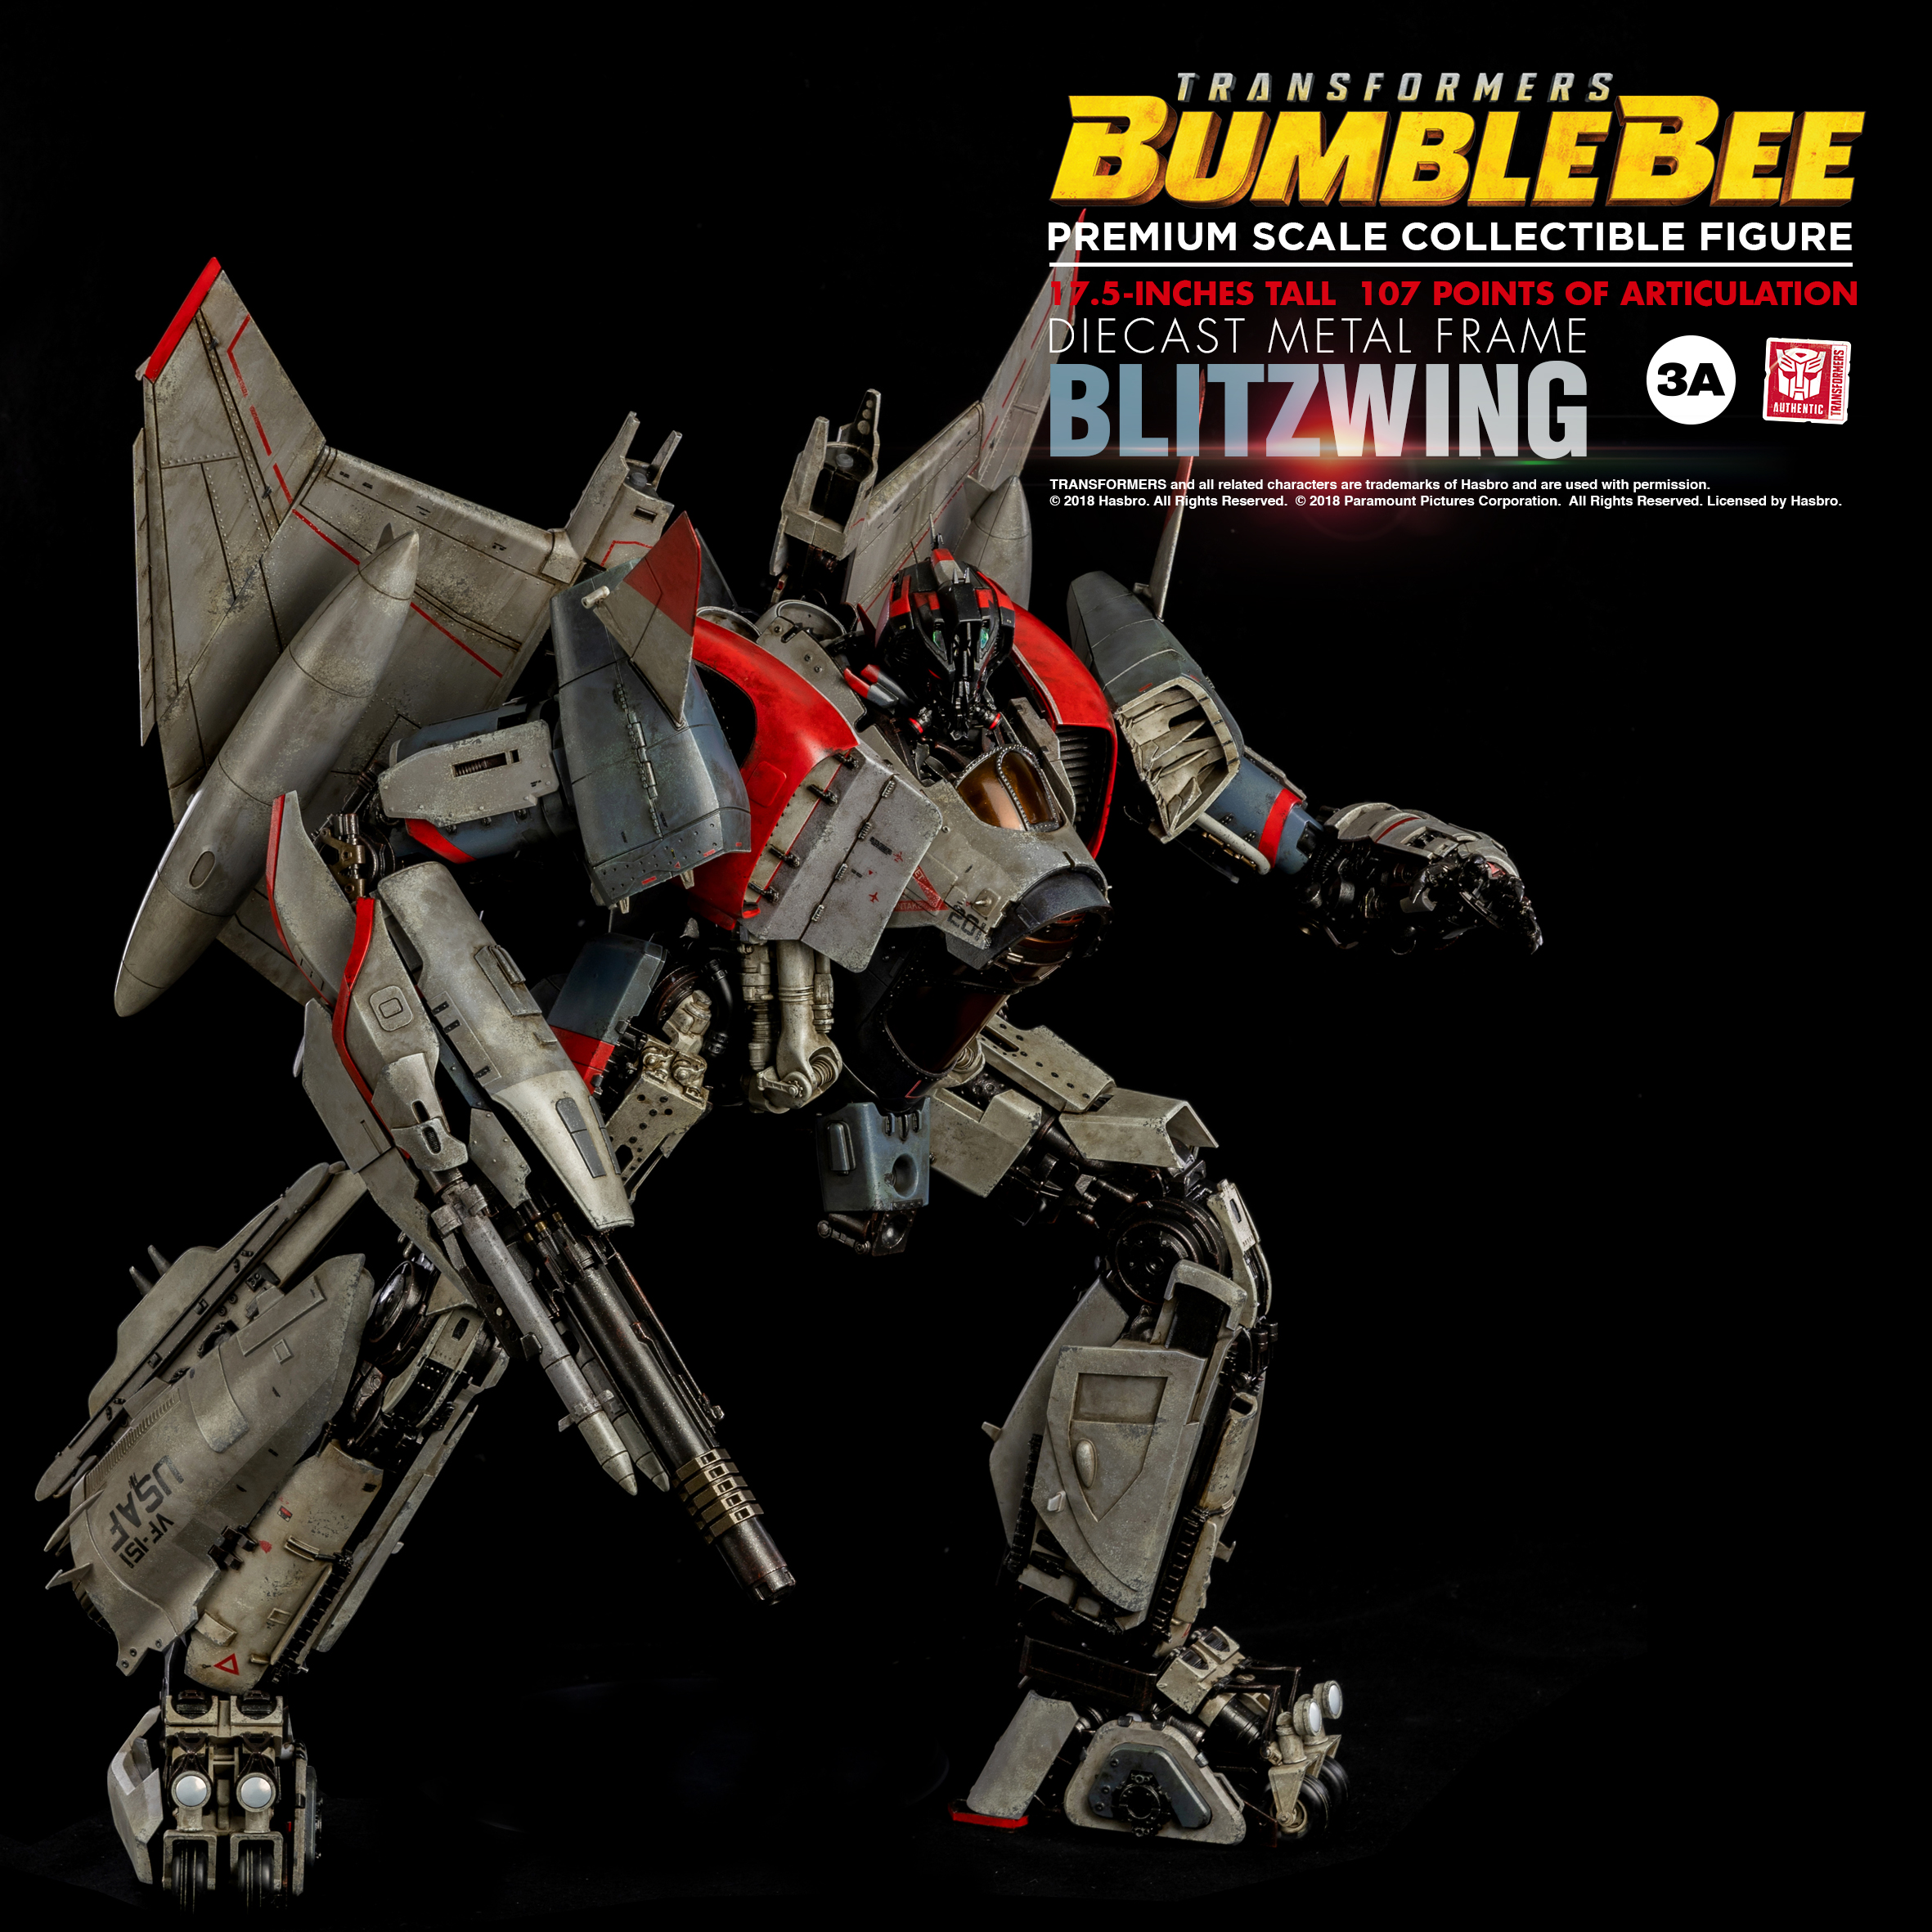 Blitzwing_PM_1149.jpg